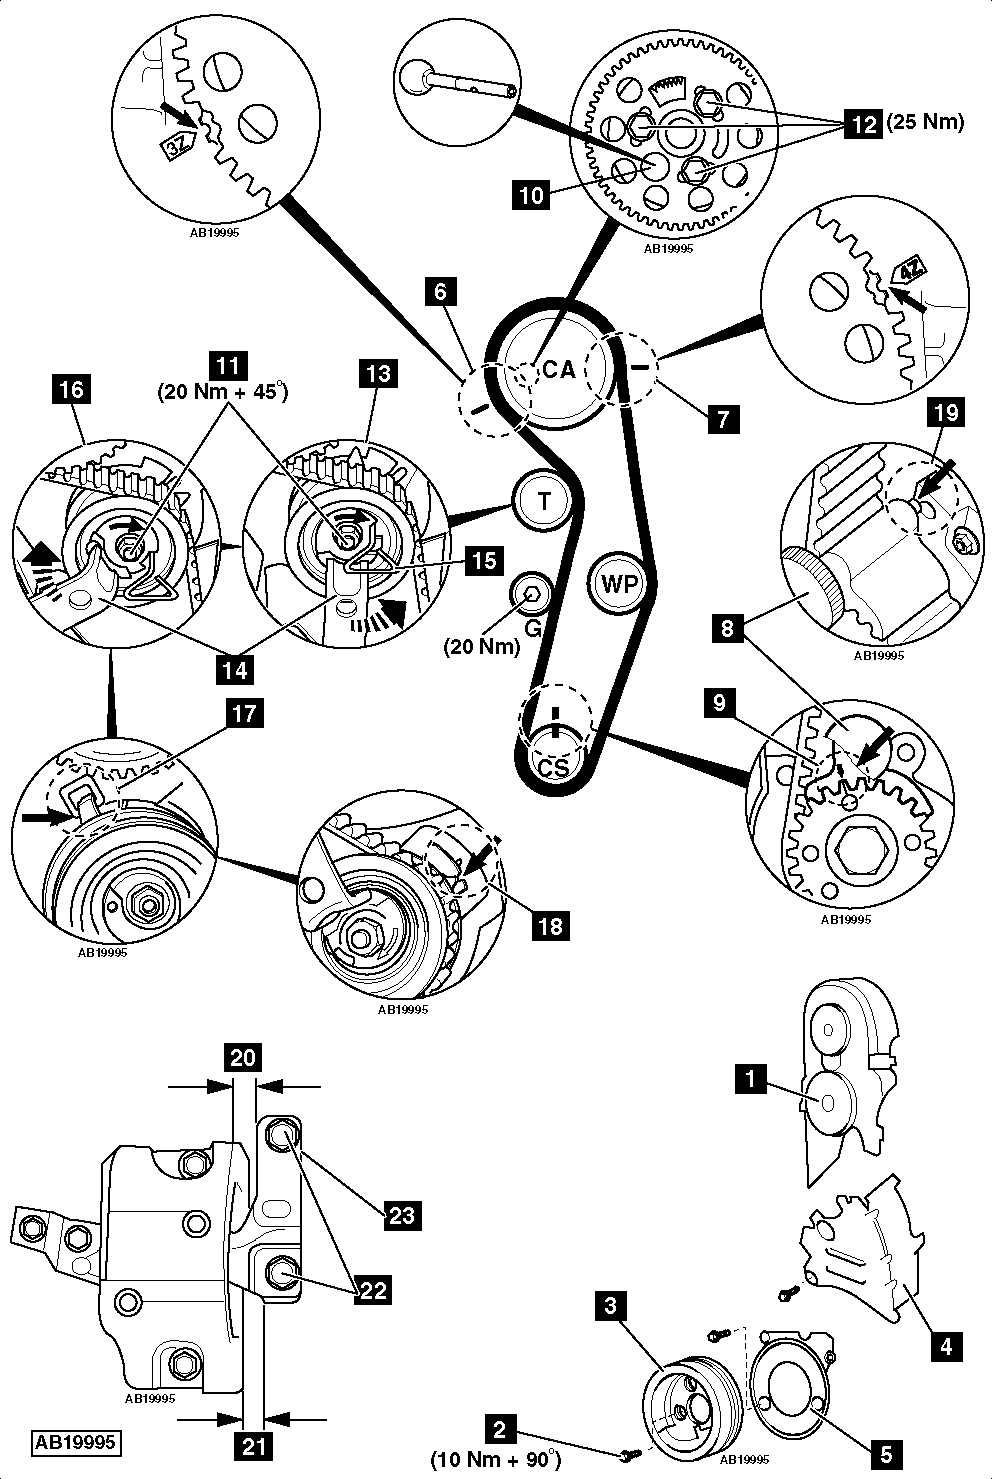 Wiring Box Diagram furthermore Vw Jetta Tdi Engine in addition 1997 Buick Lesabre Fuel Line Diagram furthermore Saturn Wiring Harness additionally Thread. on fuse box in vw golf